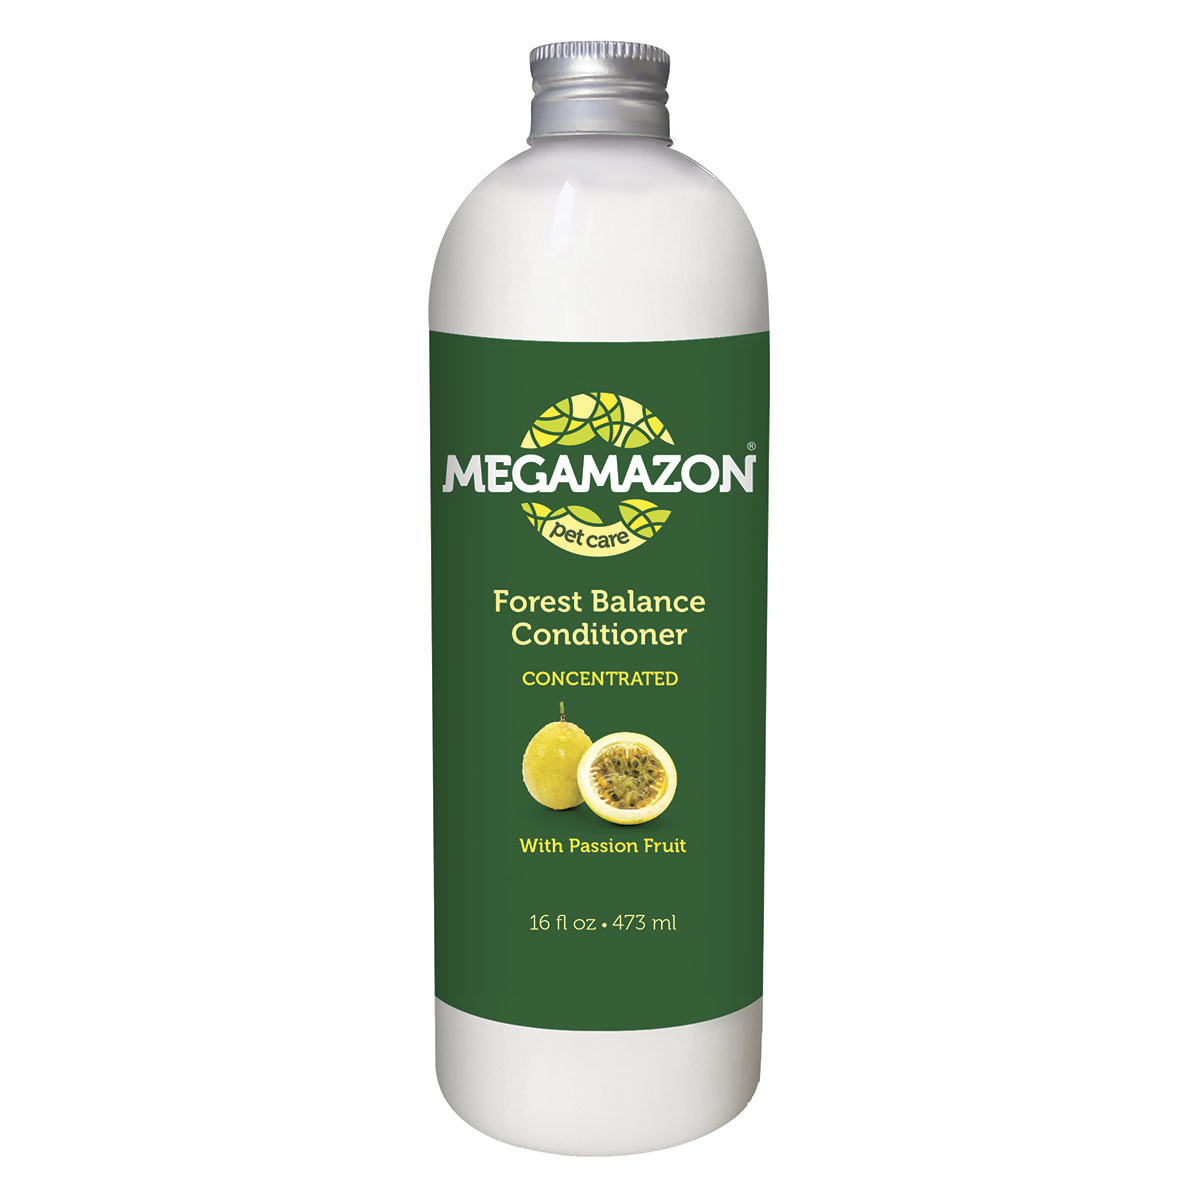 Buy Megamazon Forest Balance Pet Conditioner 16 oz